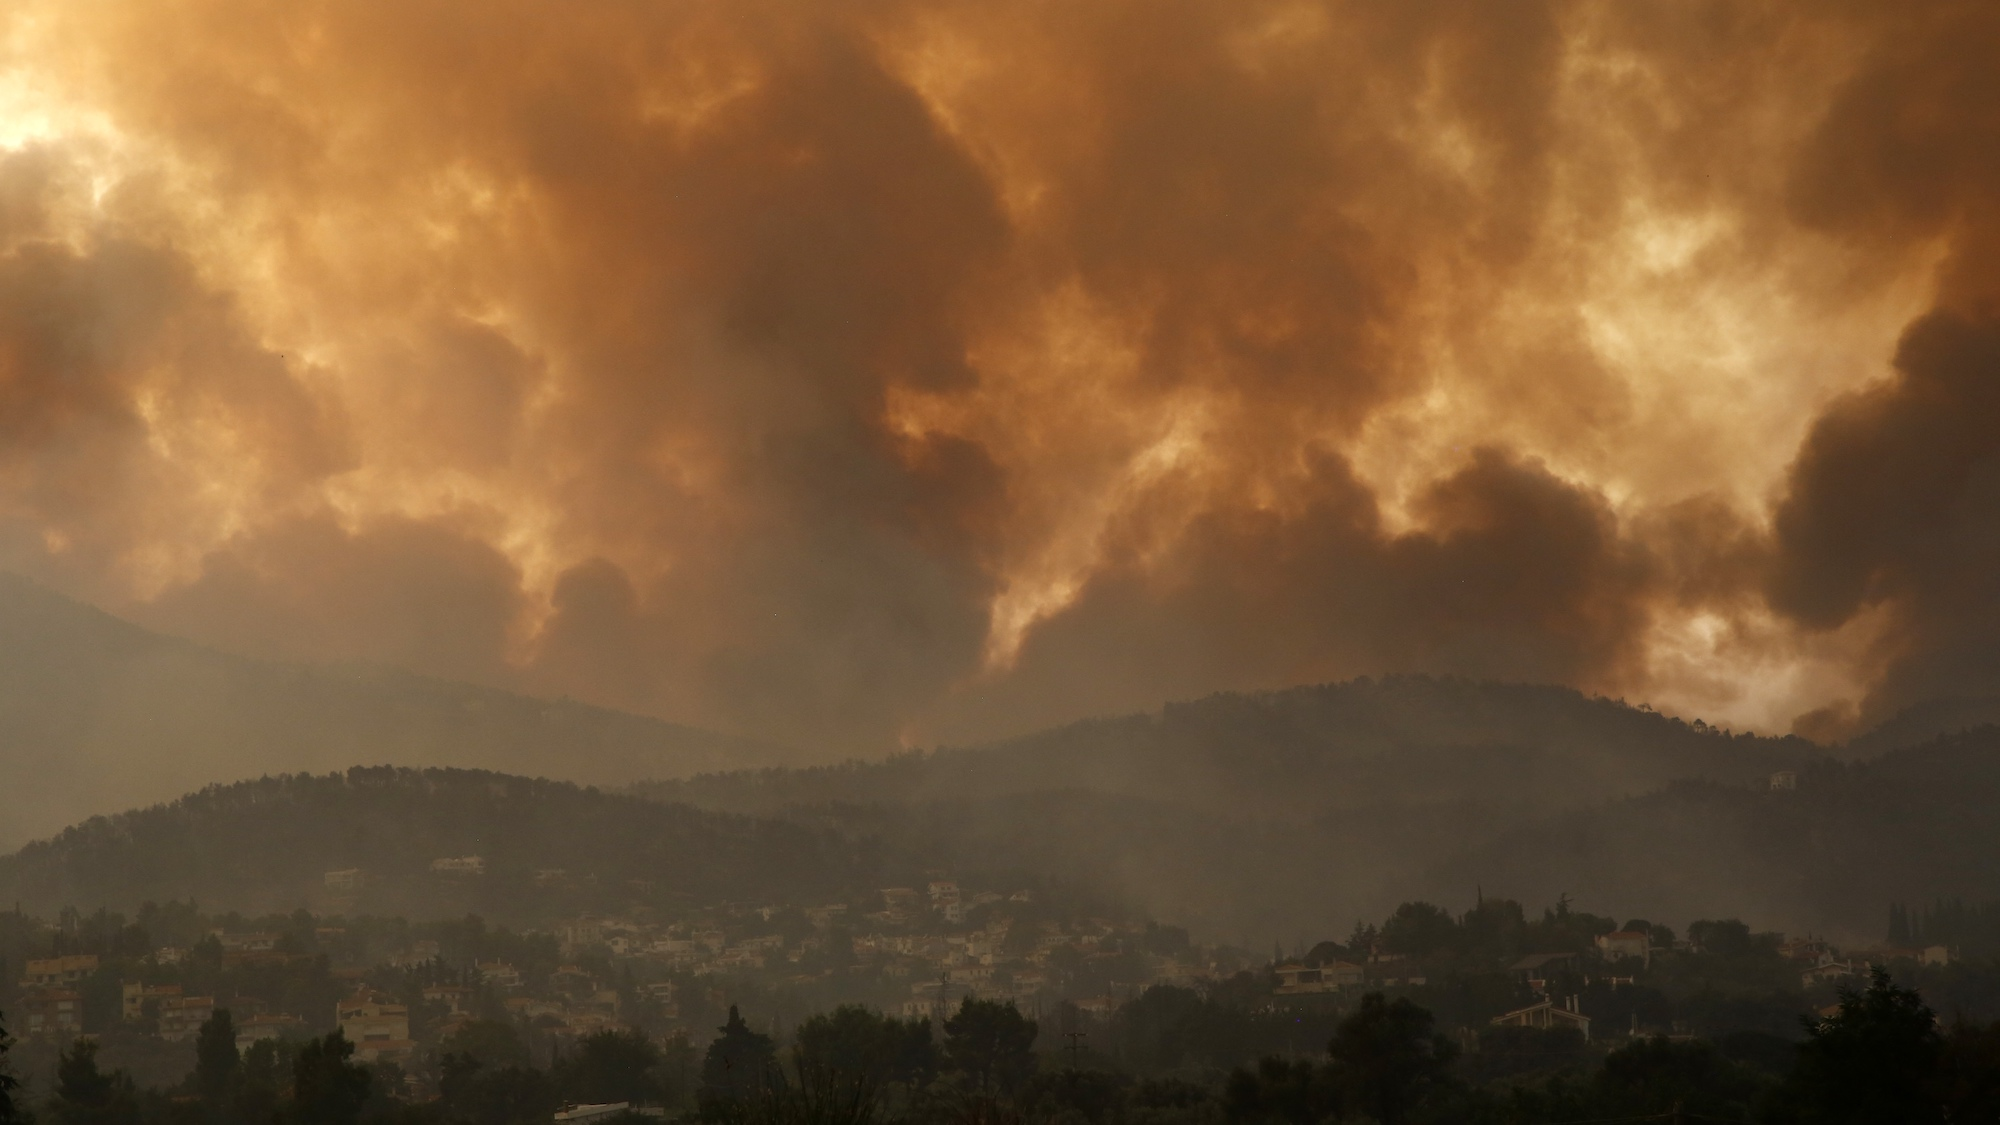 UN report: Climate change nears limits, humans must cut emissions - WHYY